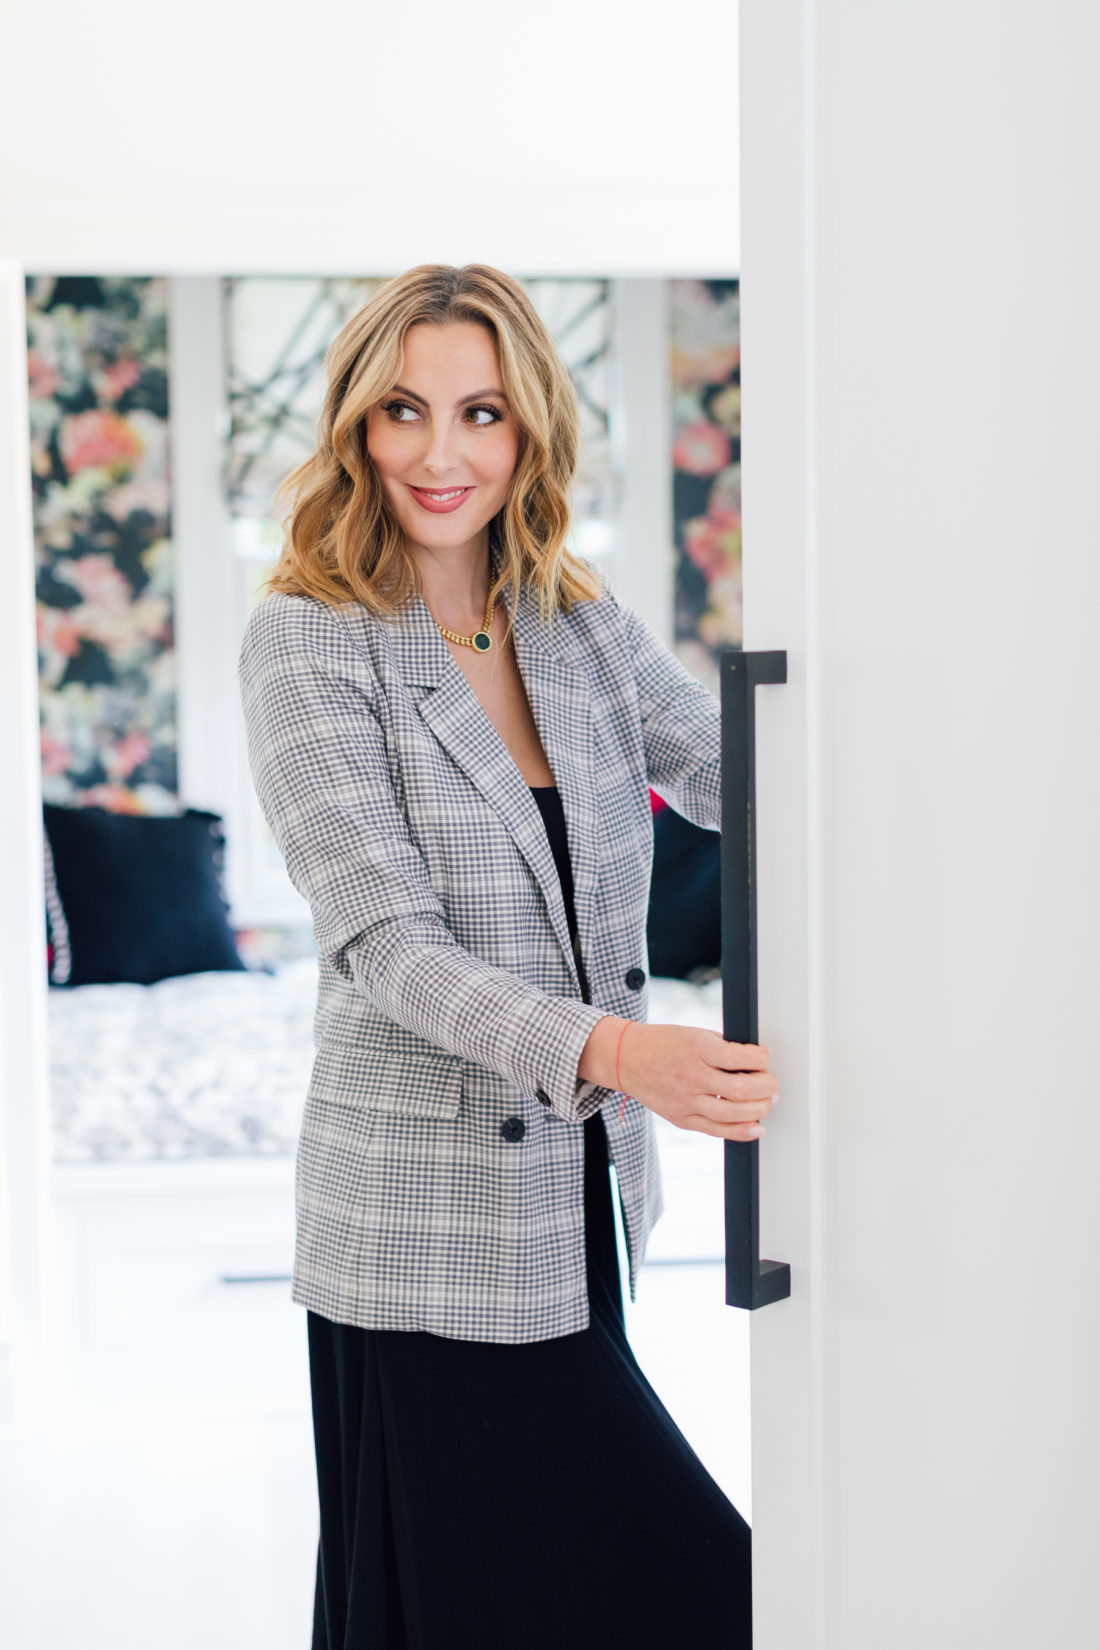 Eva Amurri Martino reaches into her fridge to make an easy lunchbox meal